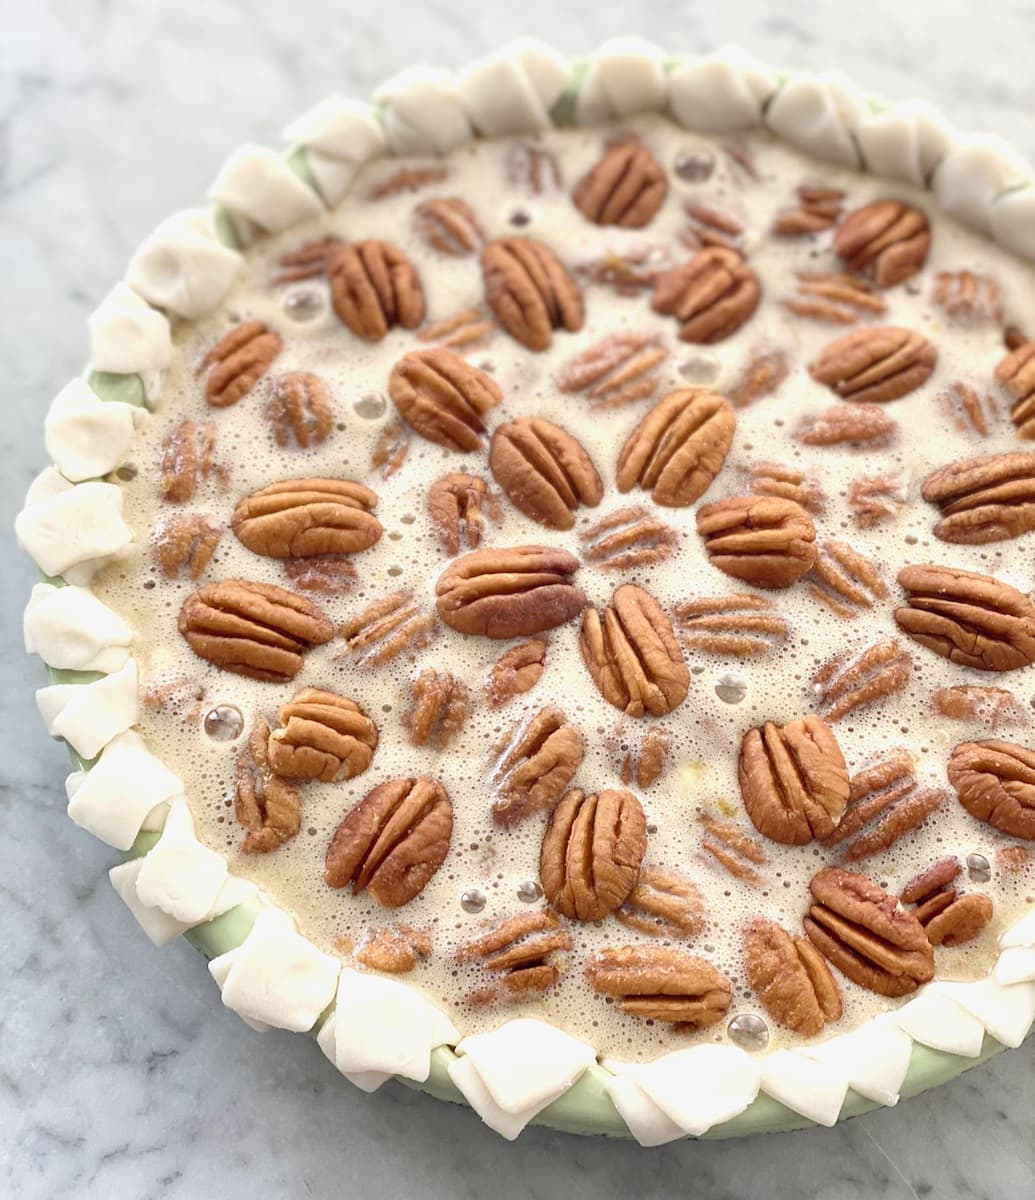 pecan pie decorated before going into the oven.